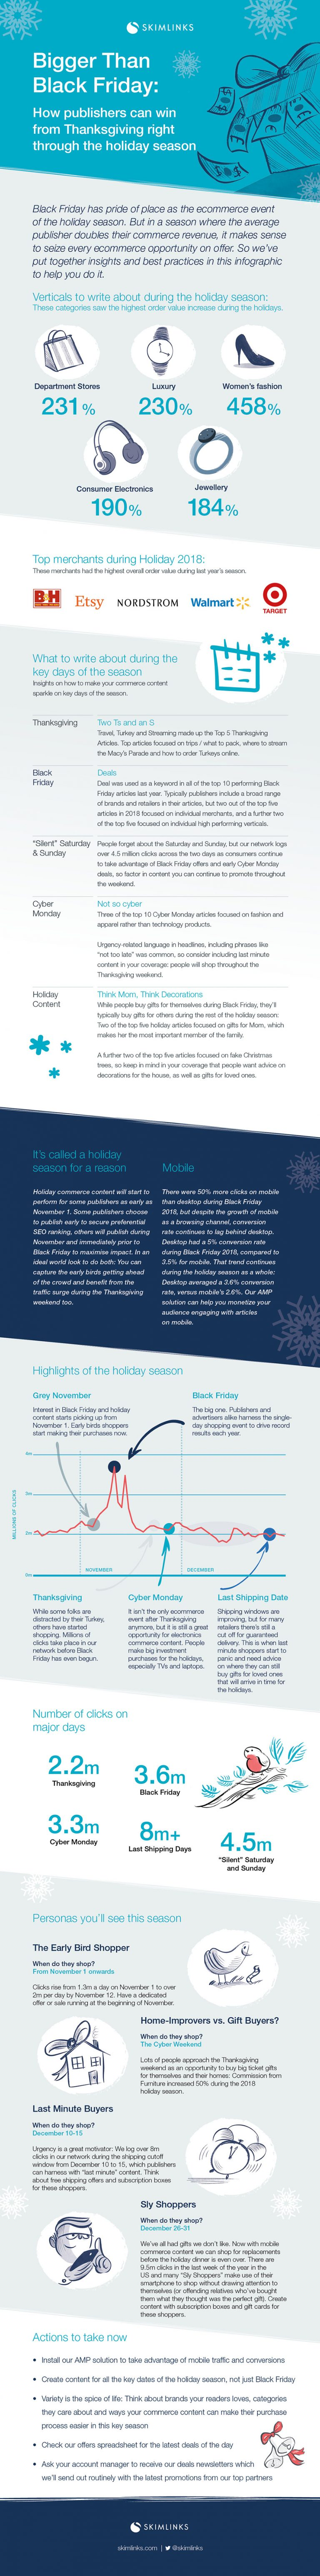 Holiday E-Commerce Content: What to Write About and for Whom 1